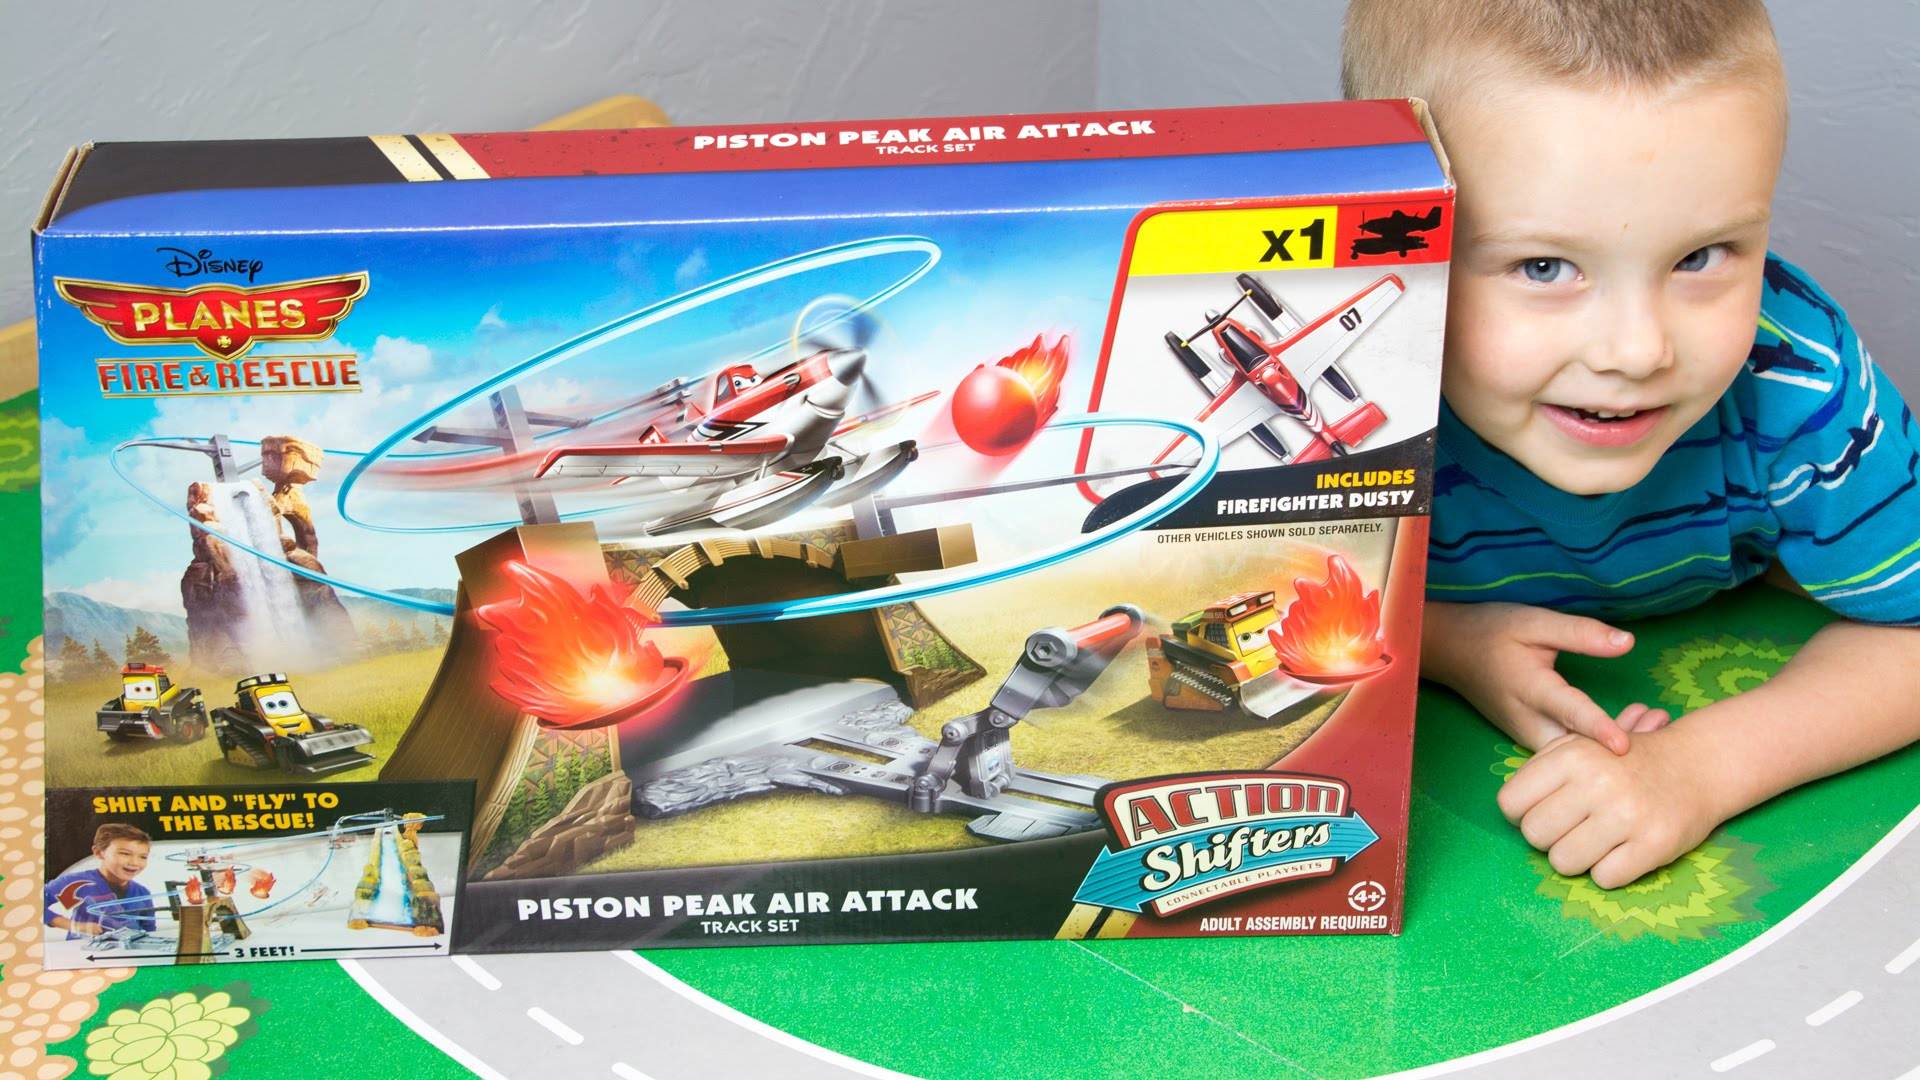 Disney Planes Fire & rescue piston peak air attack track set ของแท้ ส่งฟรี